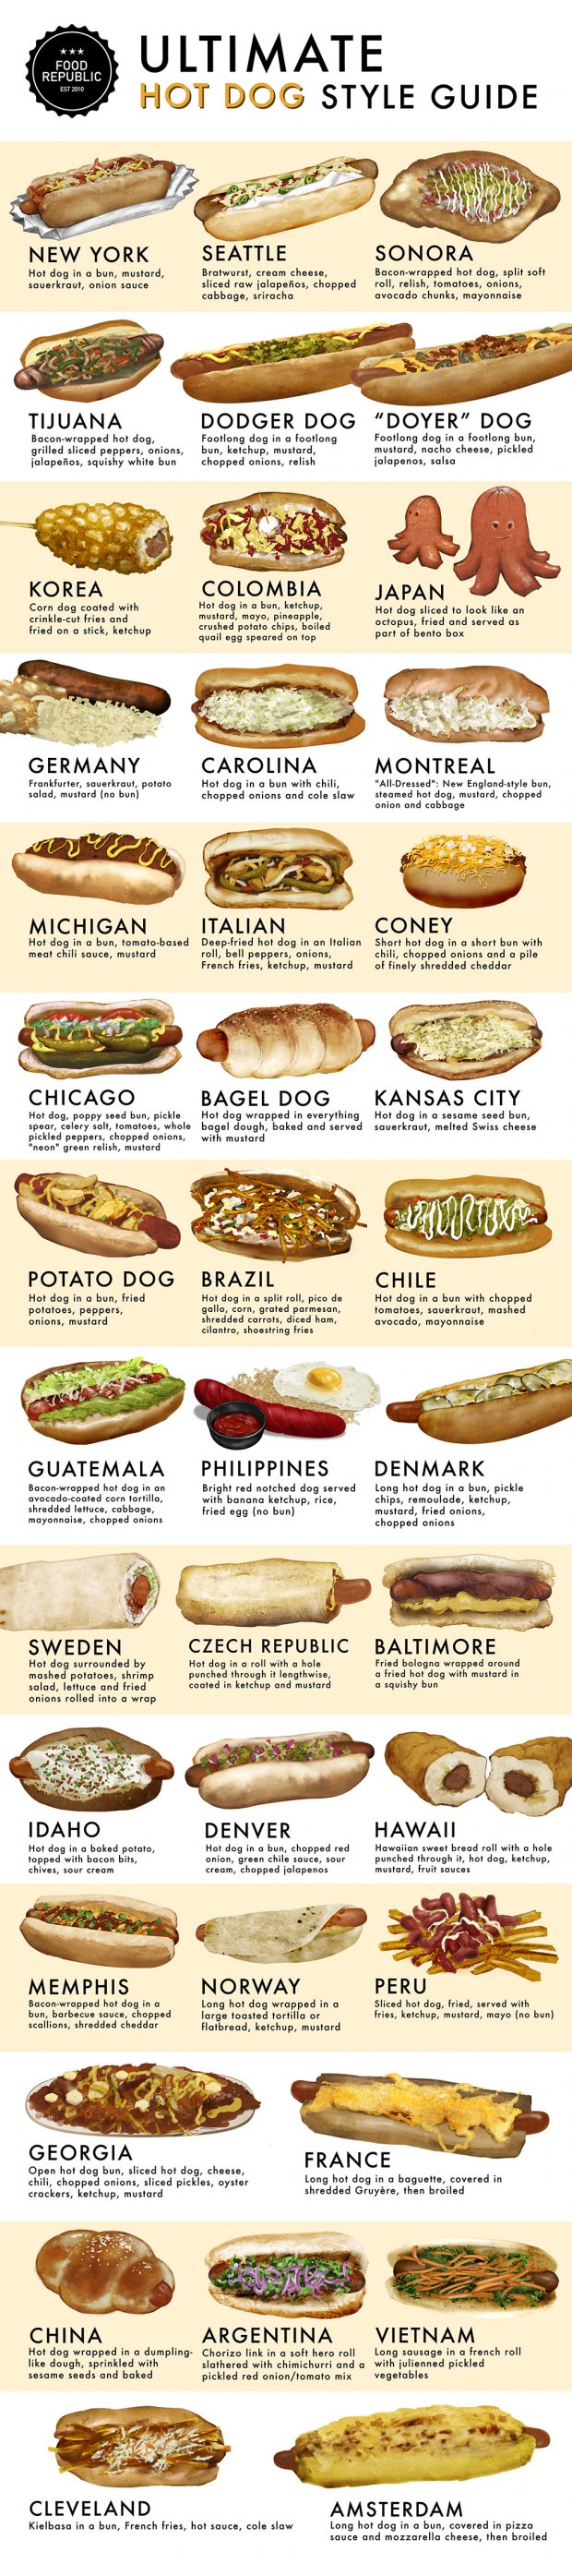 Every Hot Dog Guide